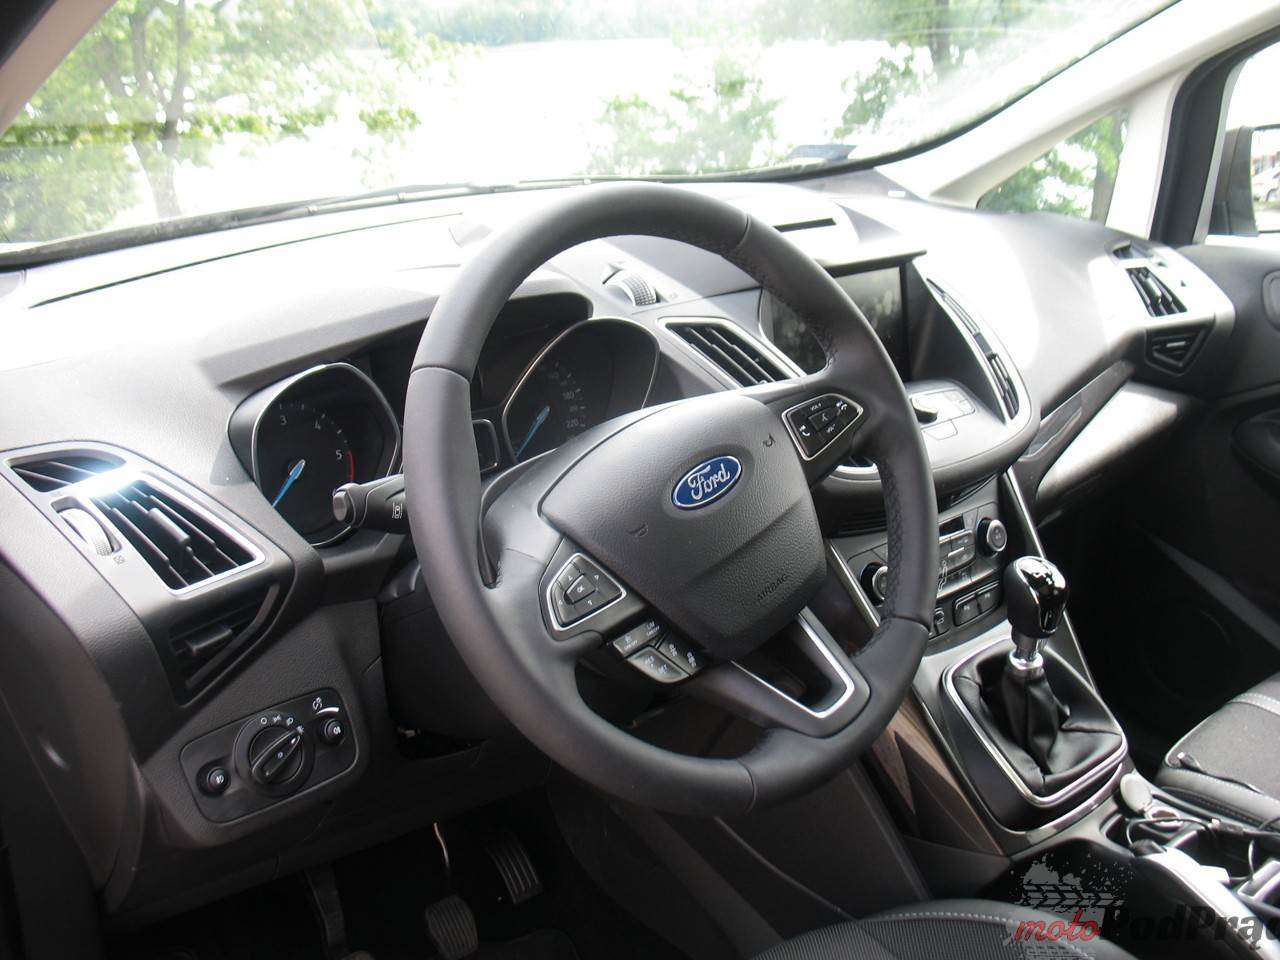 IMG 0424 Test: Ford Grand C Max 2.0 TDCi 150 KM